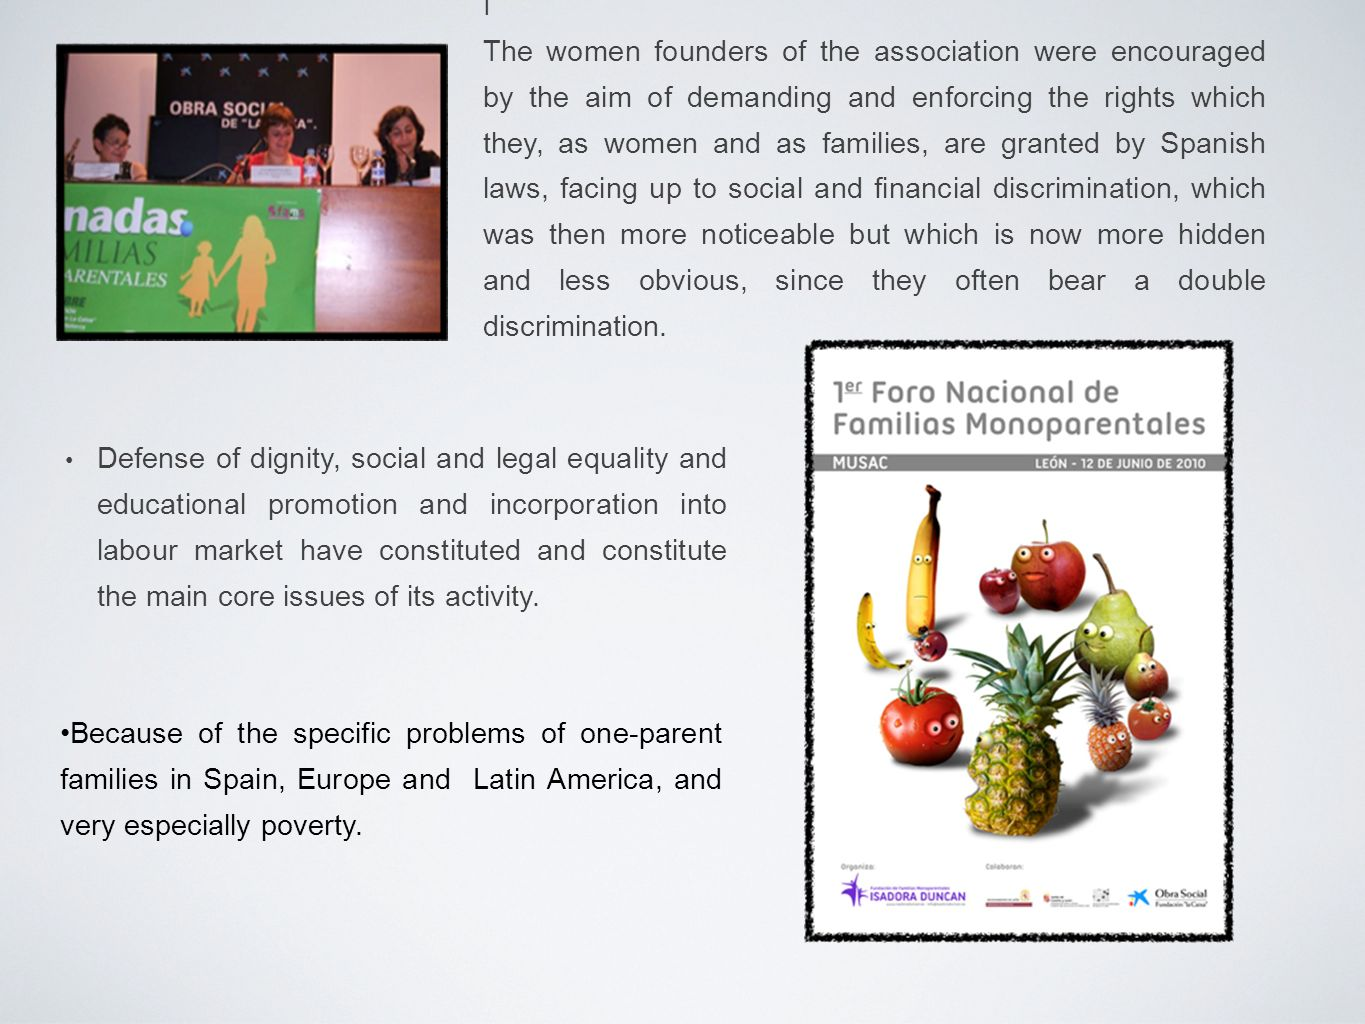 I The women founders of the association were encouraged by the aim of demanding and enforcing the rights which they, as women and as families, are granted by Spanish laws, facing up to social and financial discrimination, which was then more noticeable but which is now more hidden and less obvious, since they often bear a double discrimination.